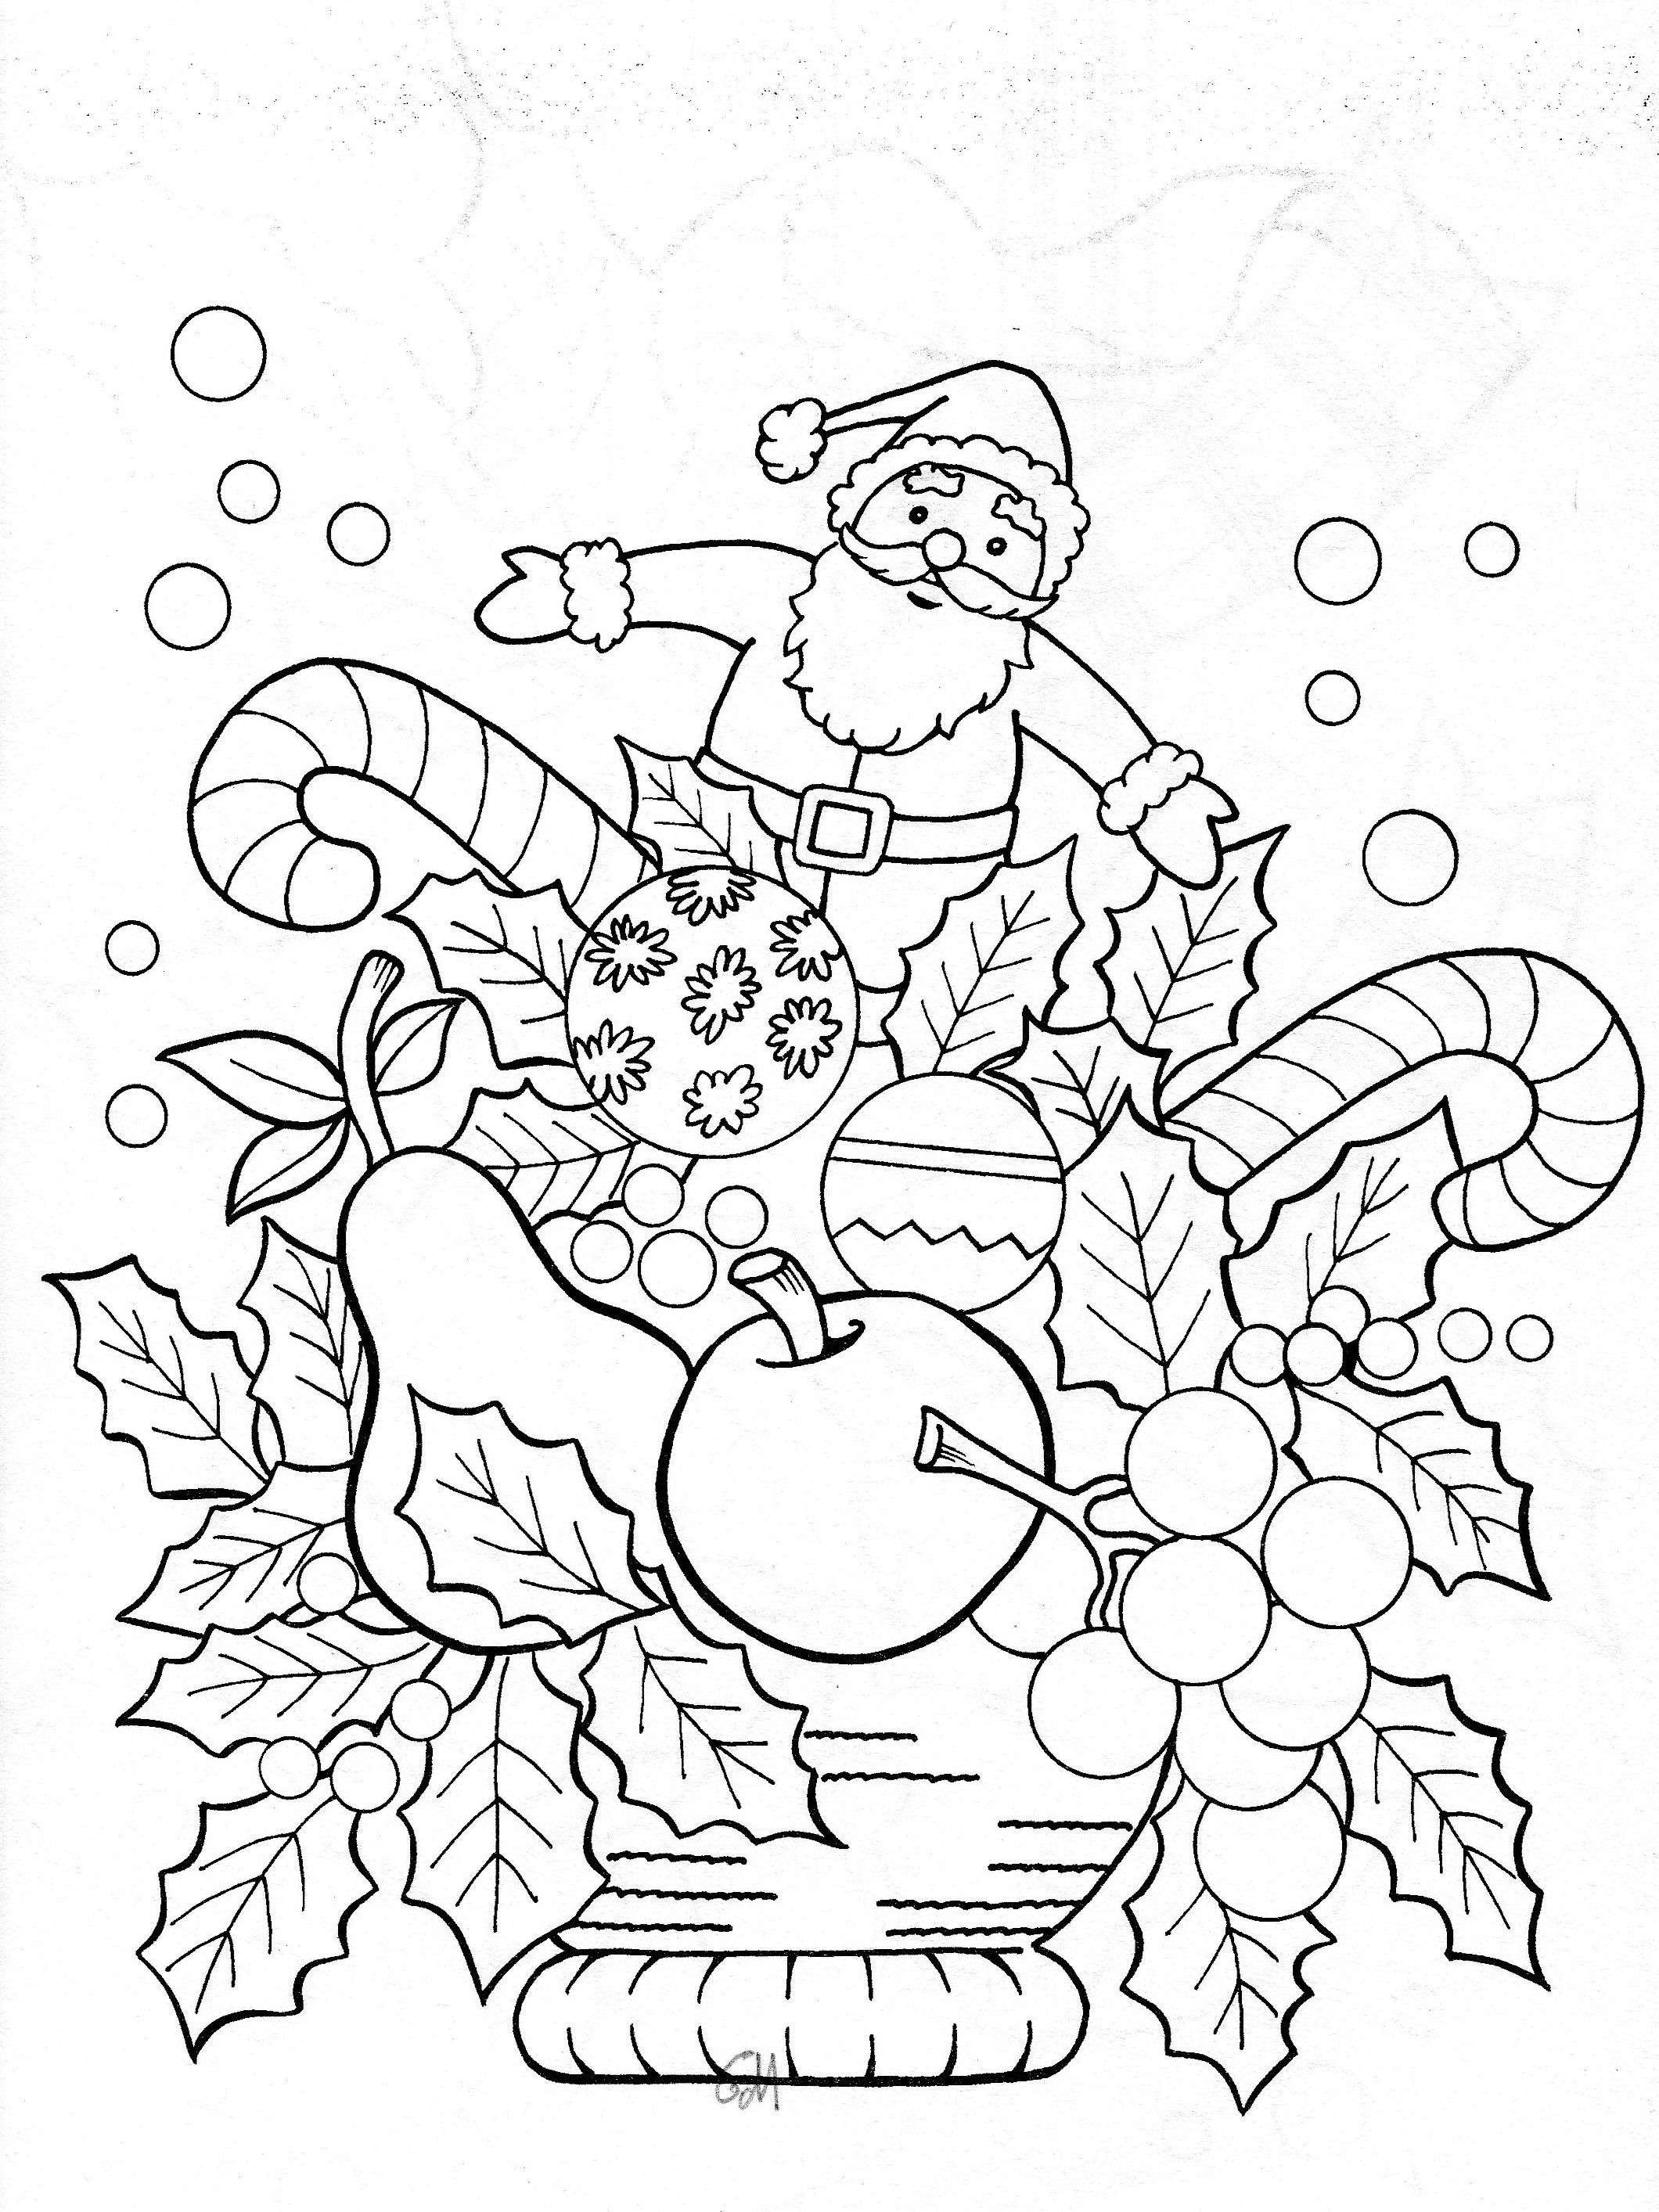 Christmas Coloring Printable Cards With Inspirational Pages For Katesgrove Org